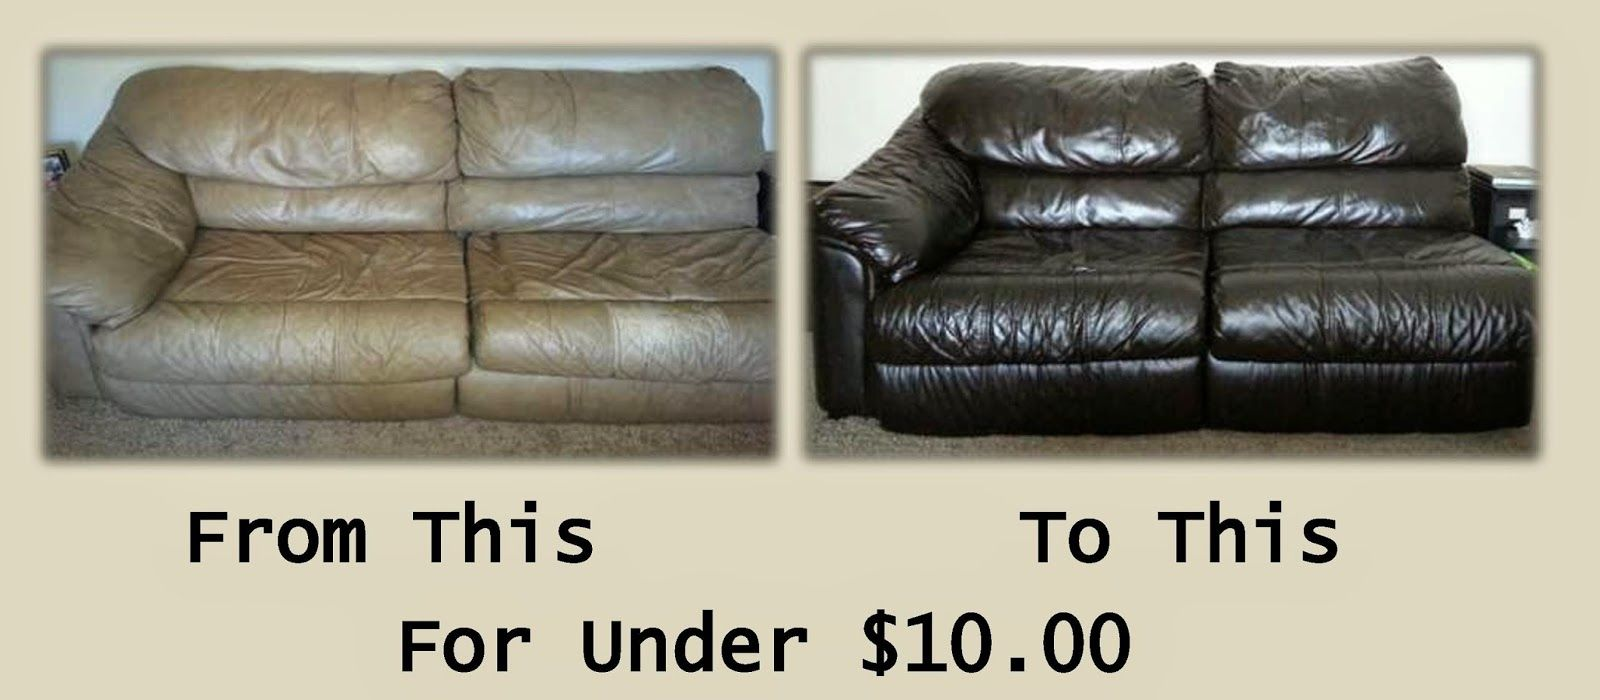 How To Remove Hair Dye Stain From Leather Sofa Rounded Arms The Easiest Cheapest Diy Project Ever Turn Your Old Worn Out Into A Work Of Art For Under 10 Hackleman S Happenings